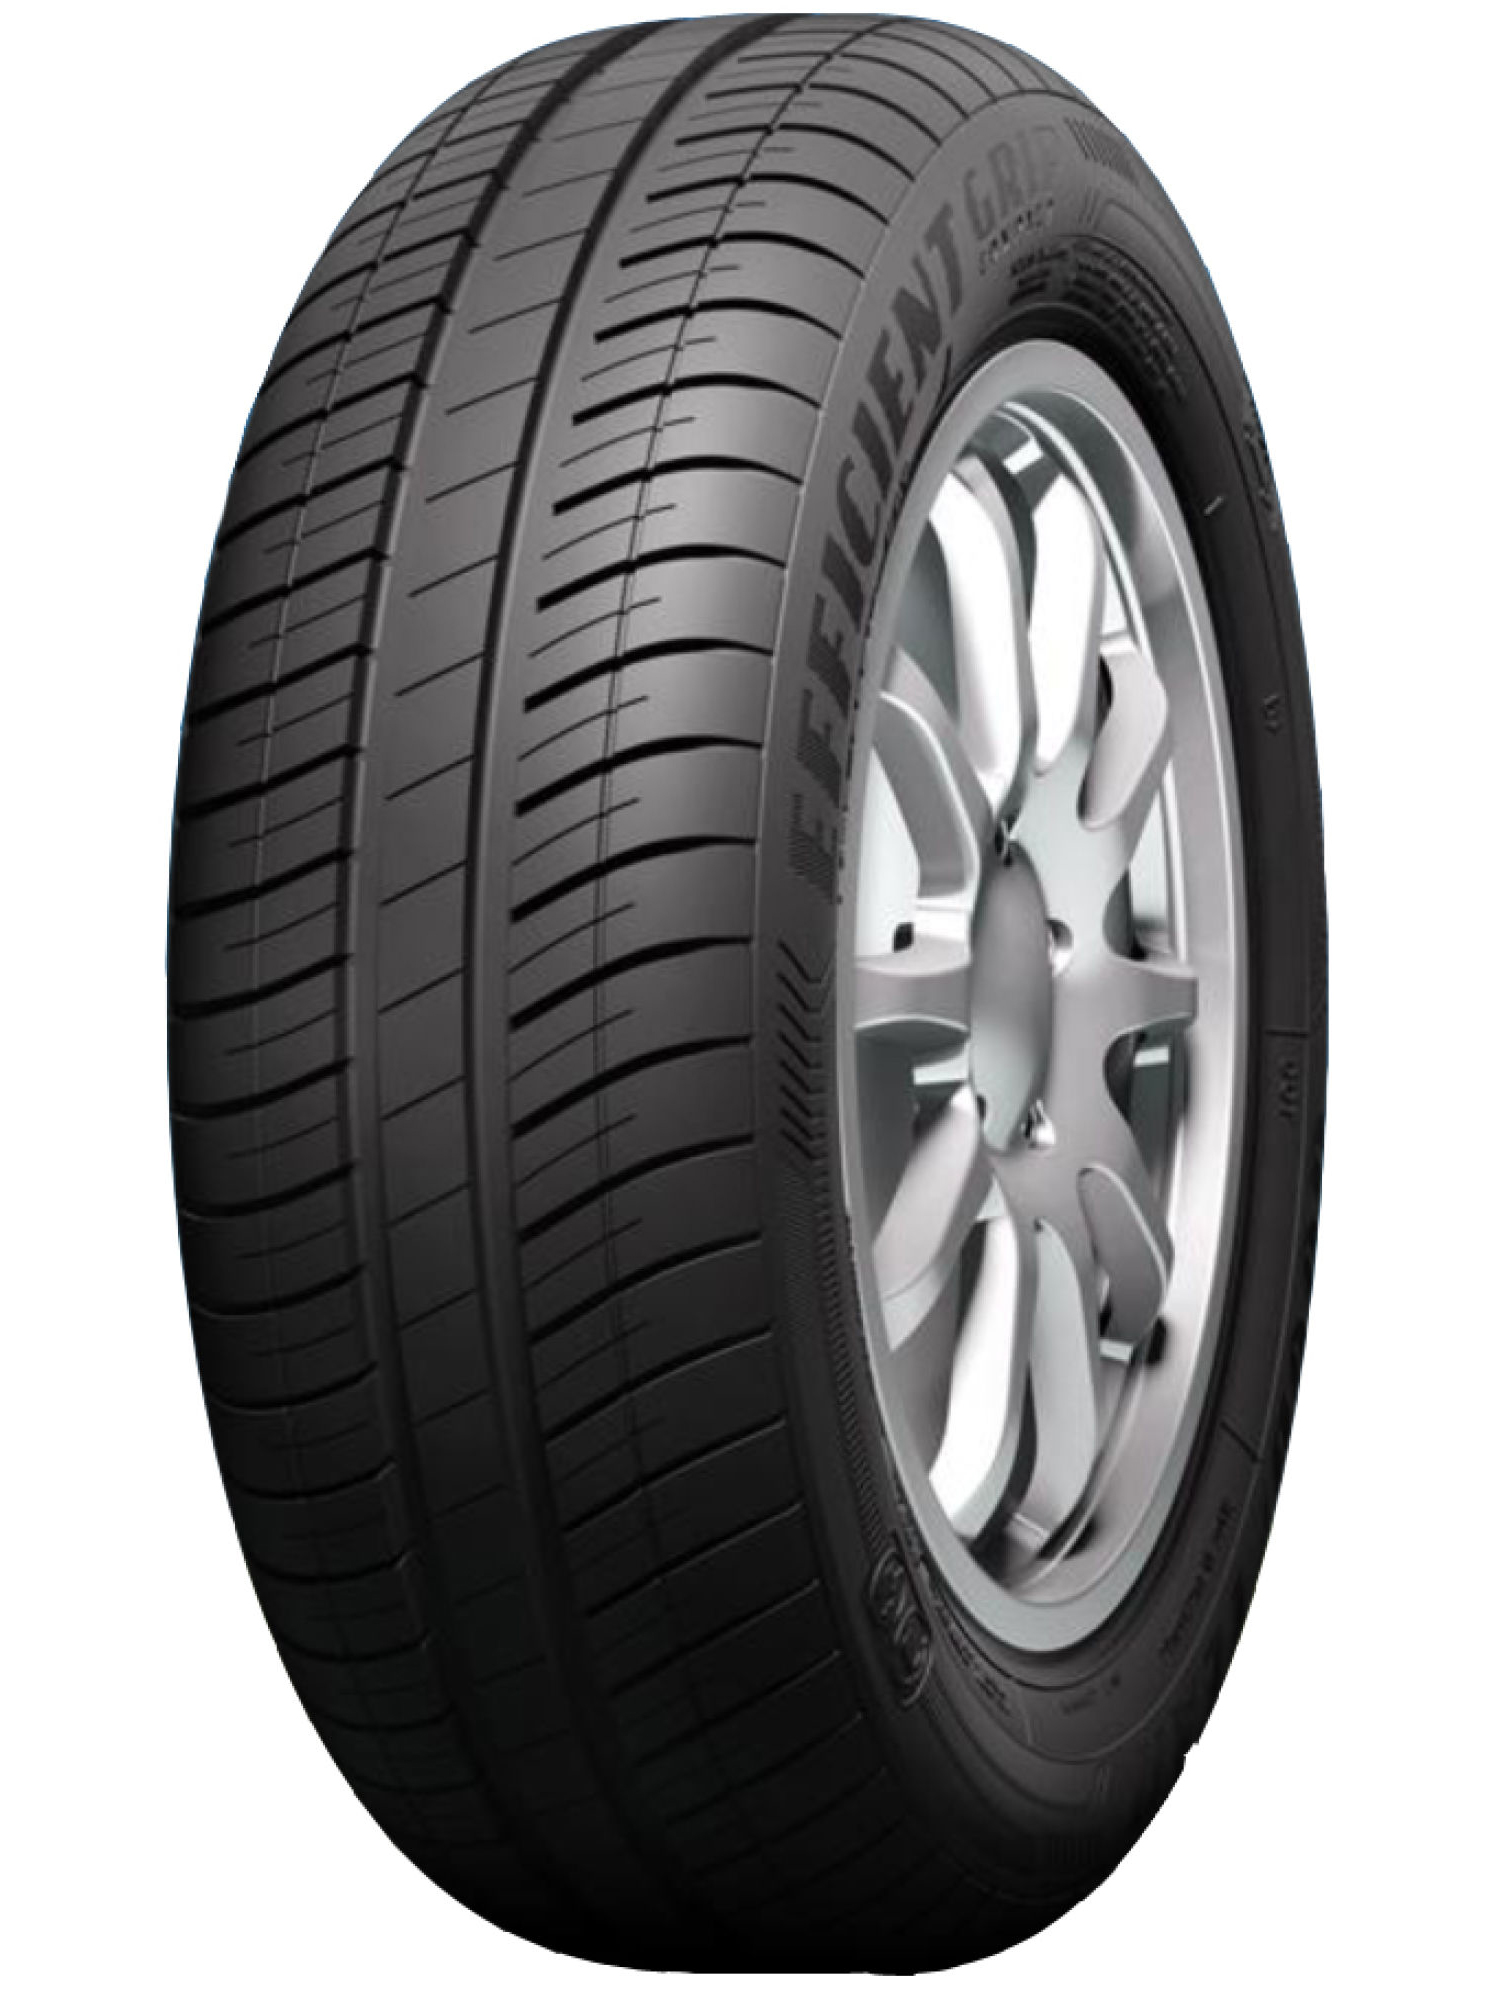 Anvelopa vara GOODYEAR Efficientgrip Compact 165/70 R13 79T